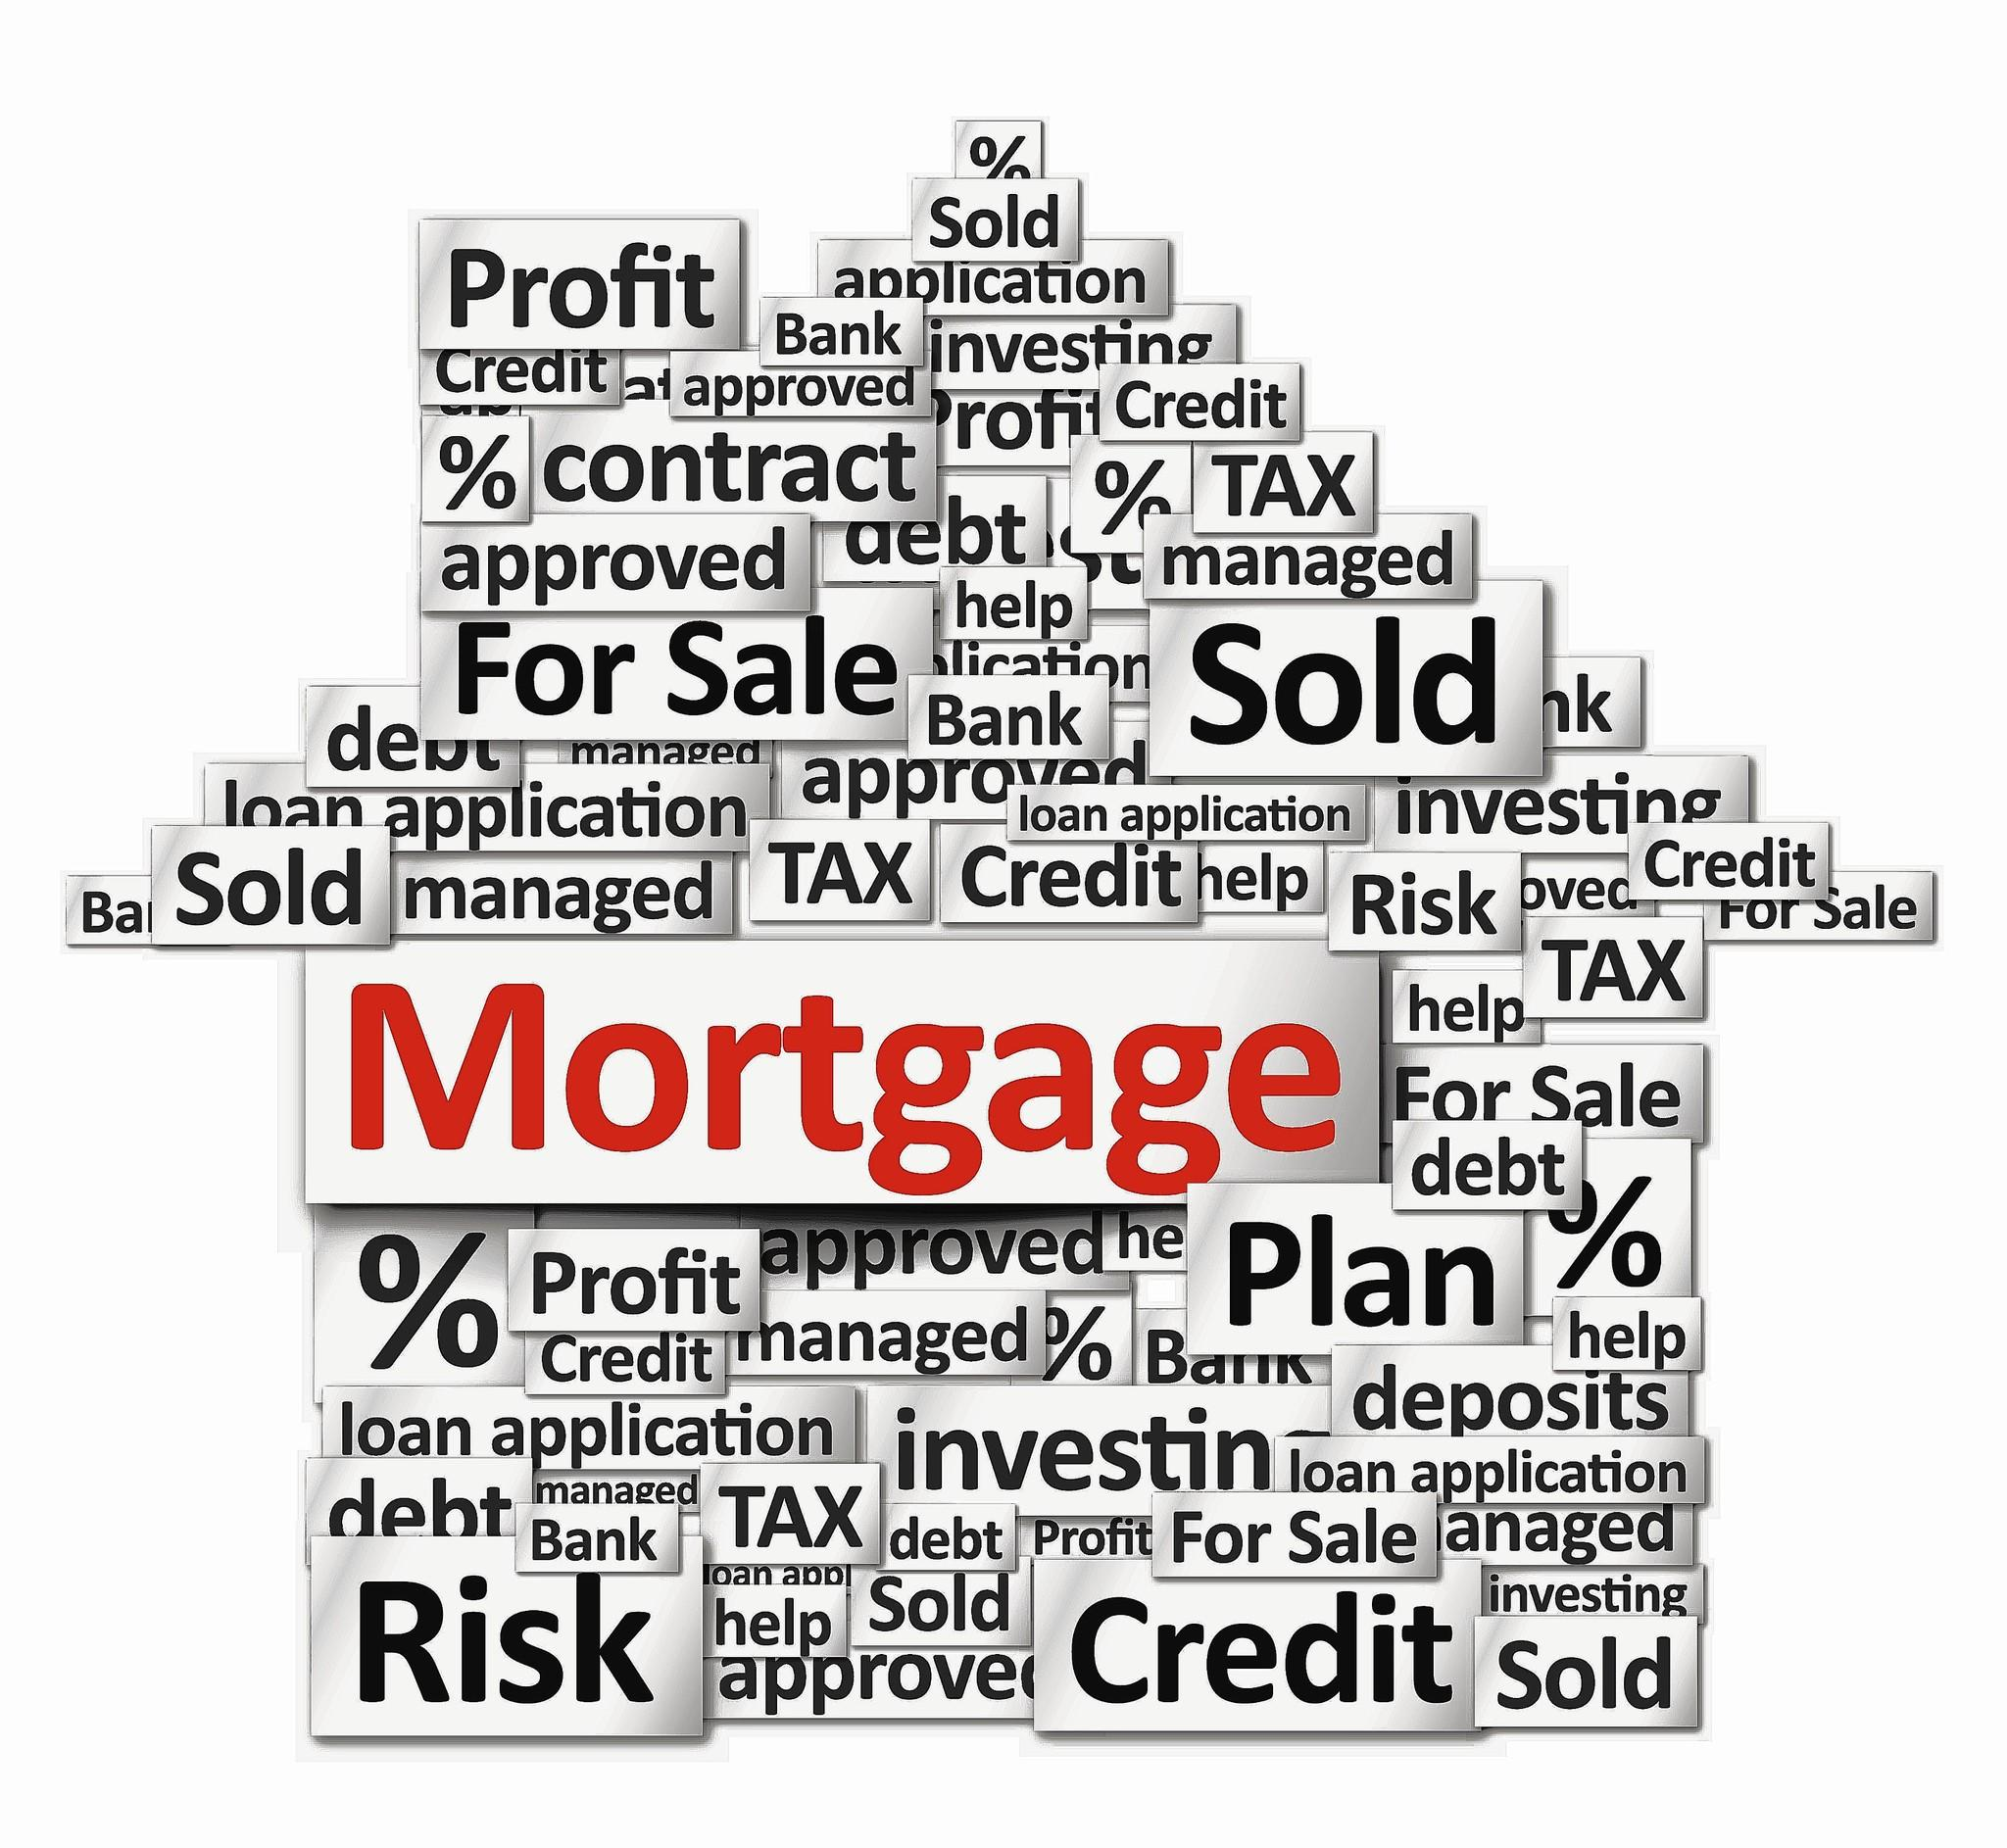 Mortgage technology provider Ellie Mae reported that credit standards for mortgages ended 2013 at their lowest level all year.